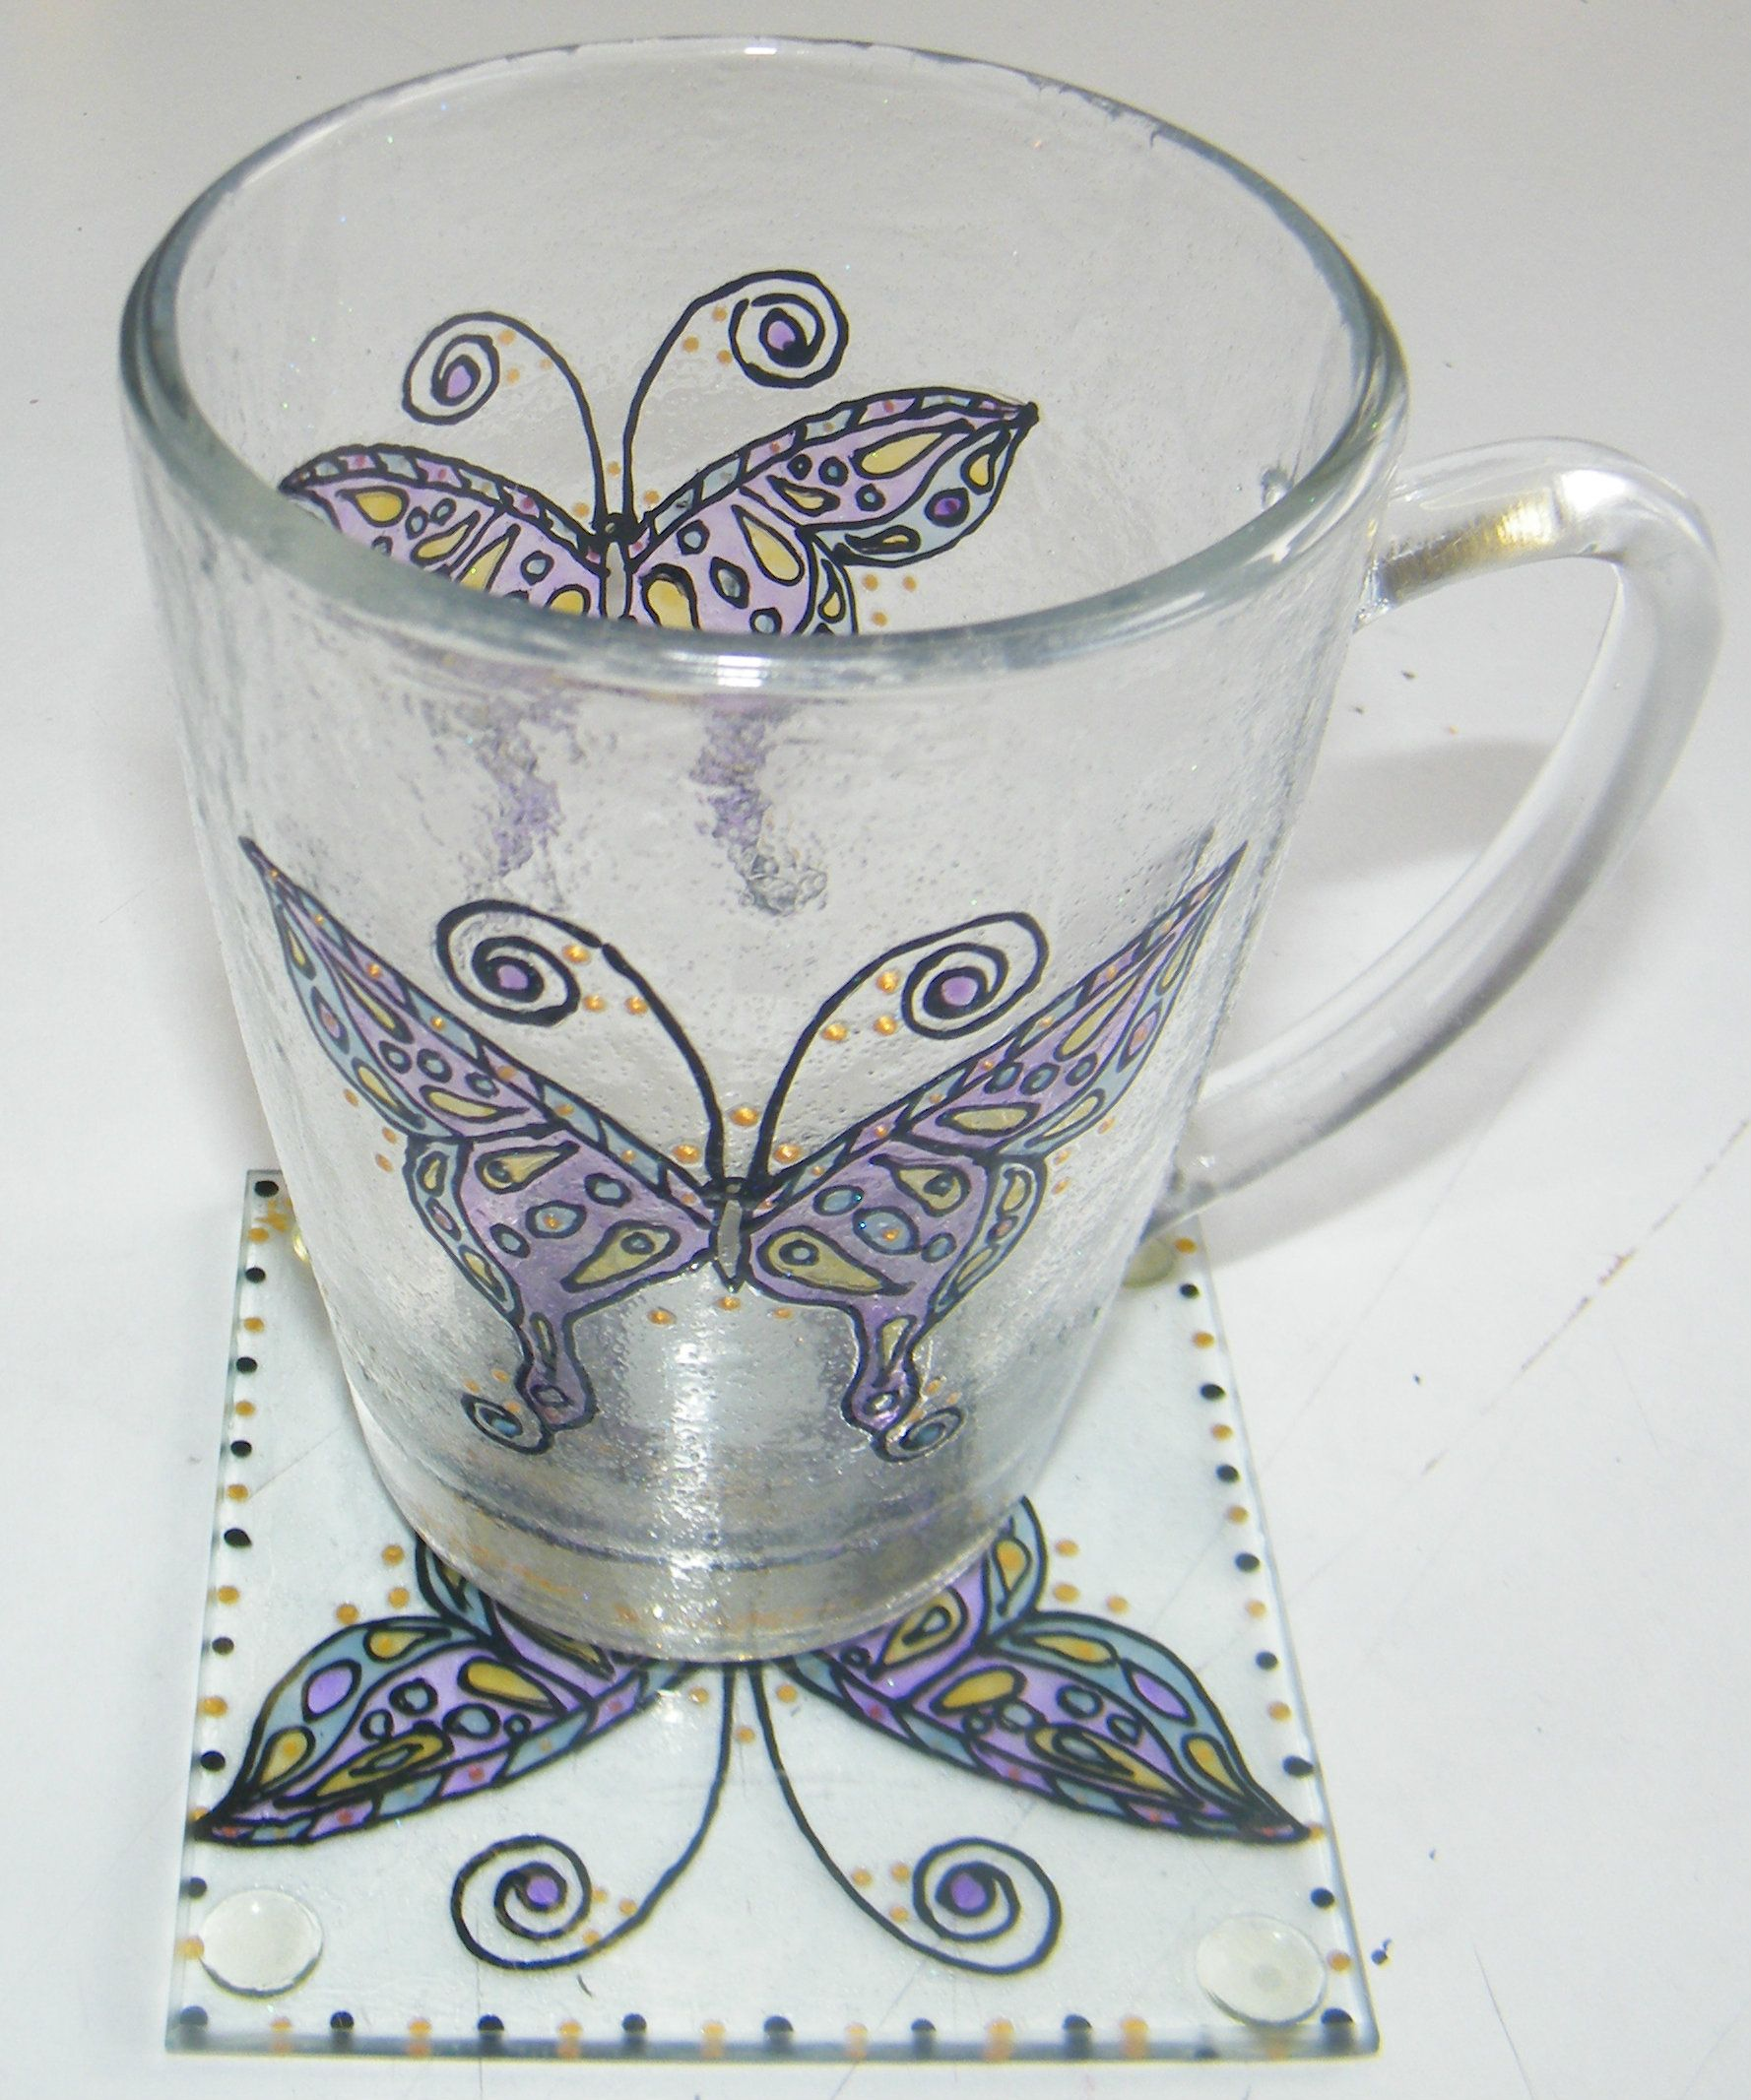 Pin by Kim Rose Colored Glass on Housewares / Favors